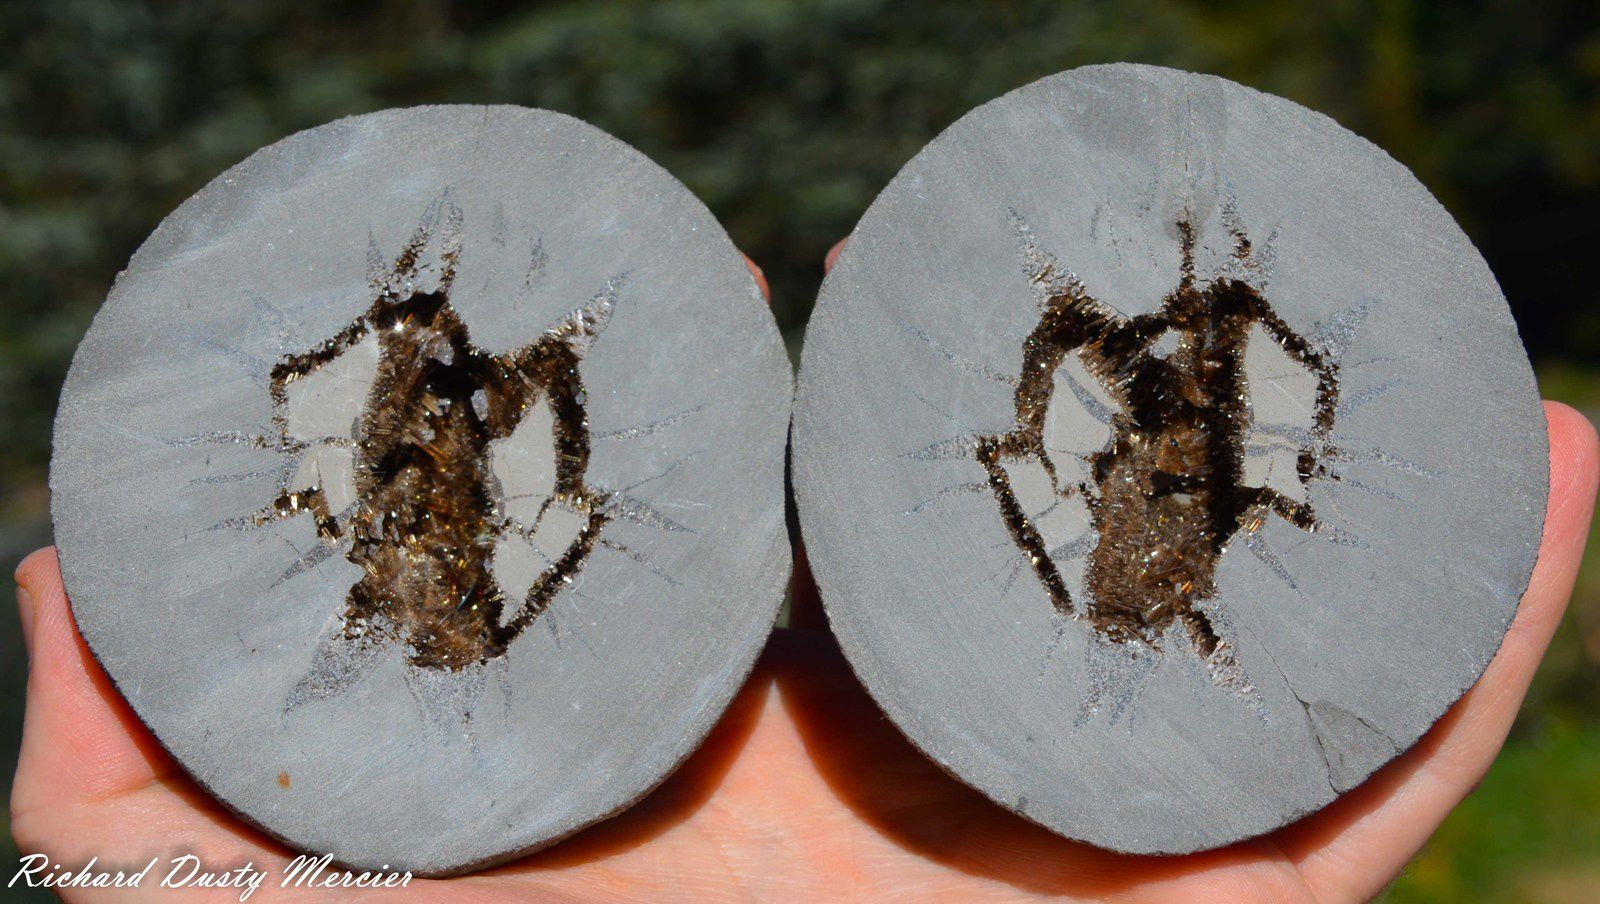 Septarian of Baryte from Guniane, Drome, France (size: Small cabinet)